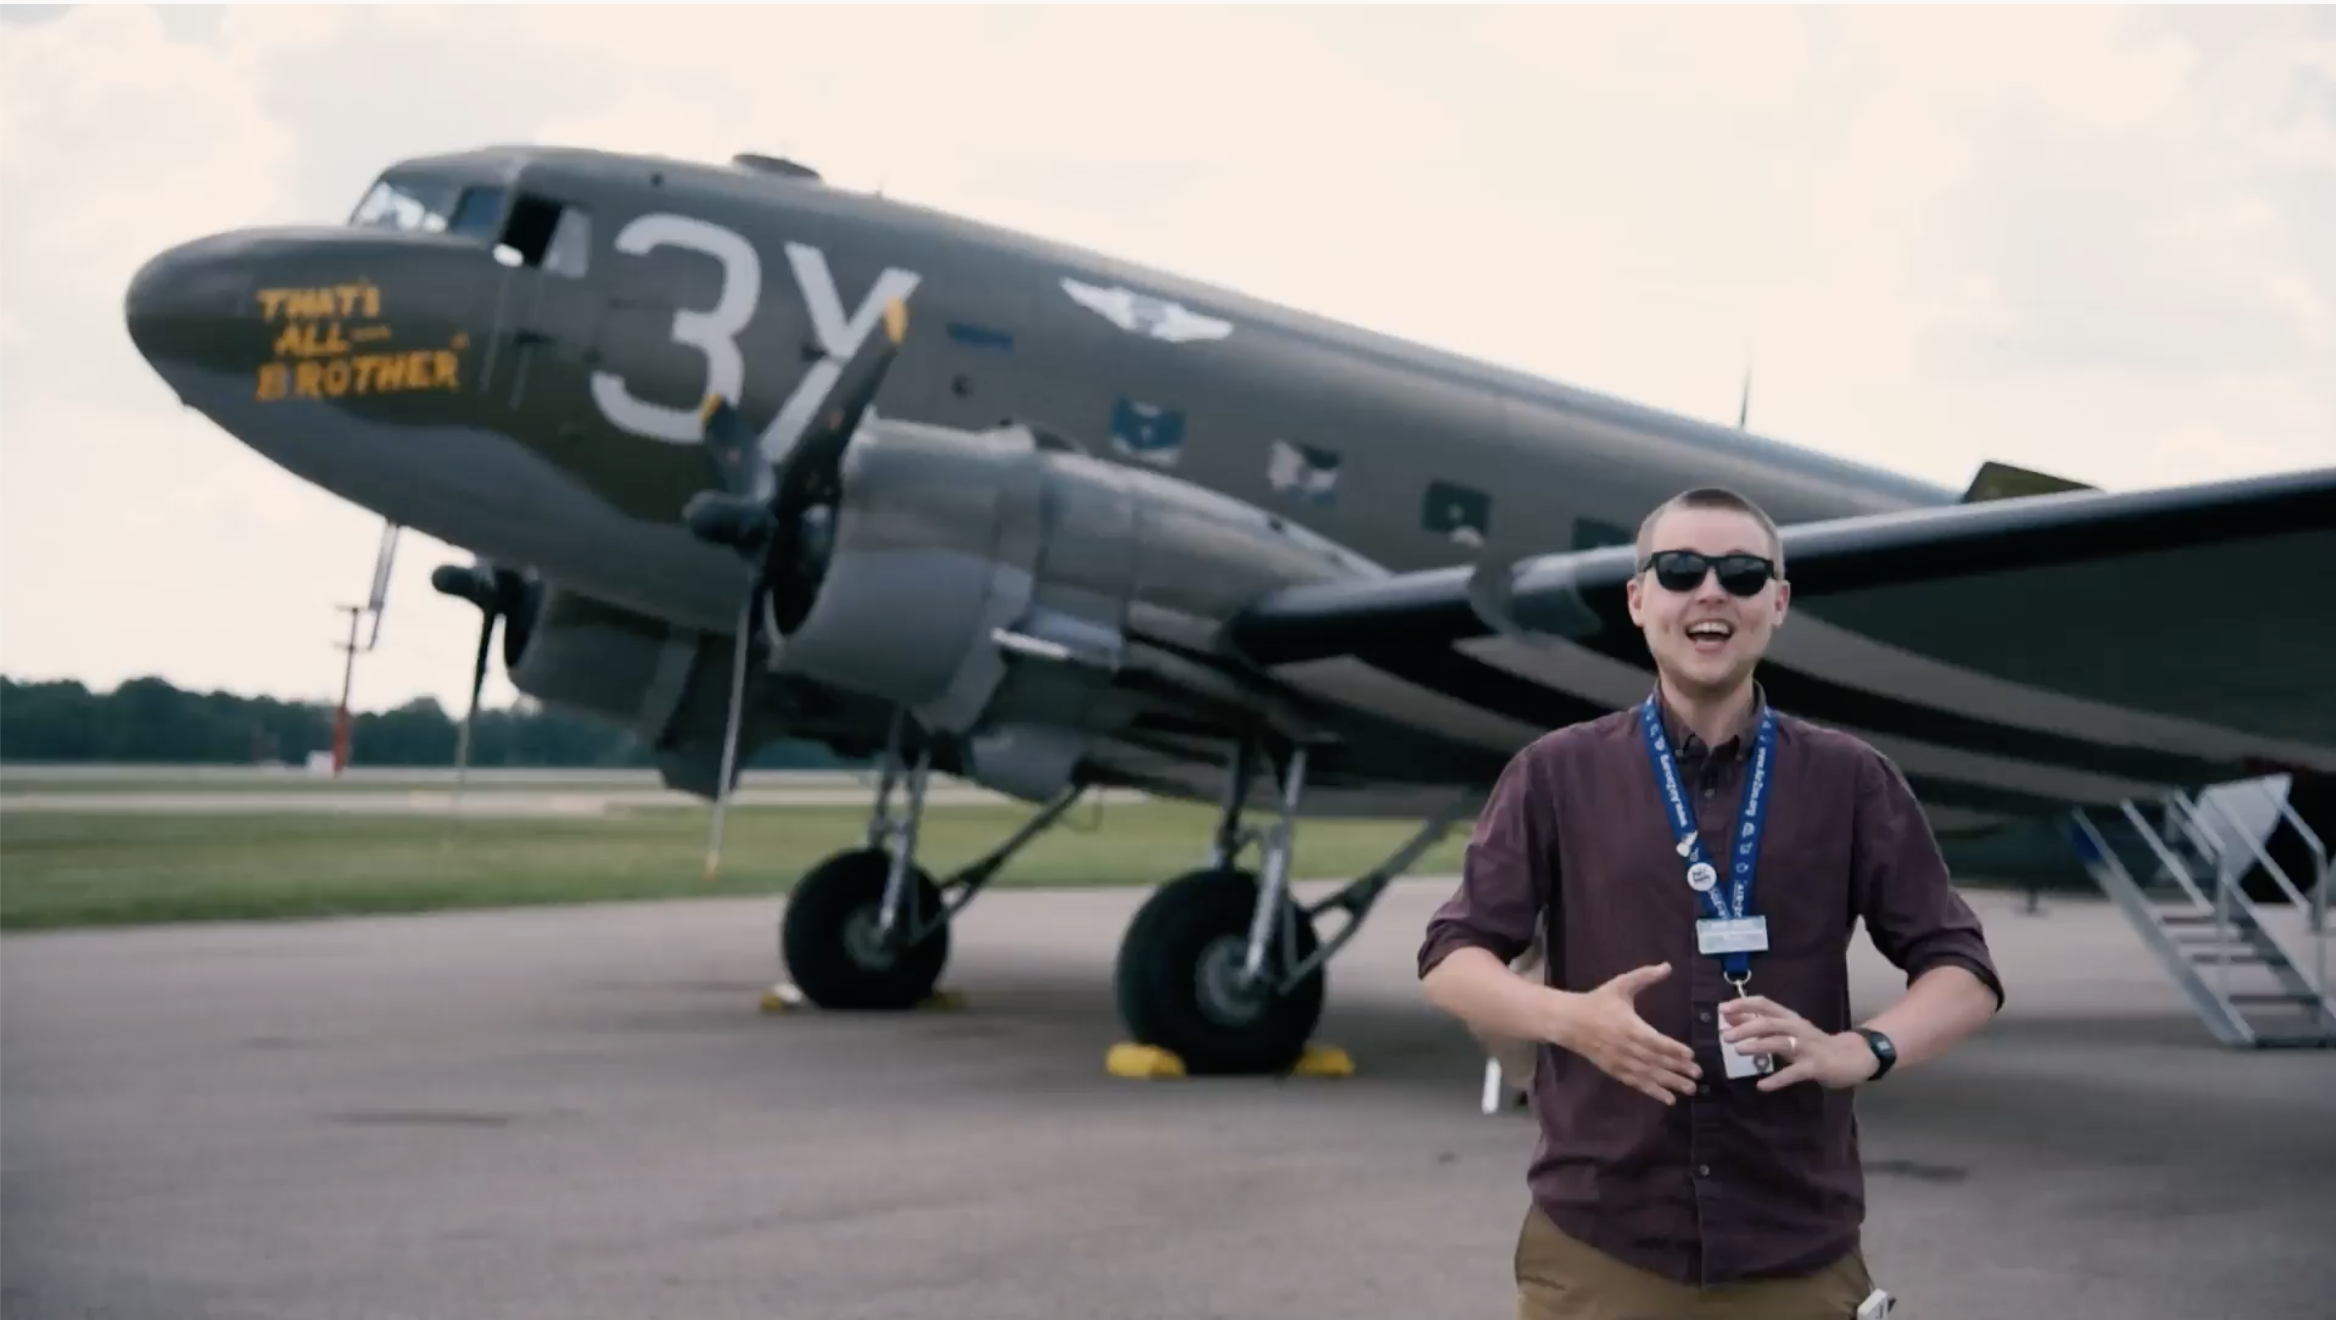 A look at the C-47 that led D-Day image